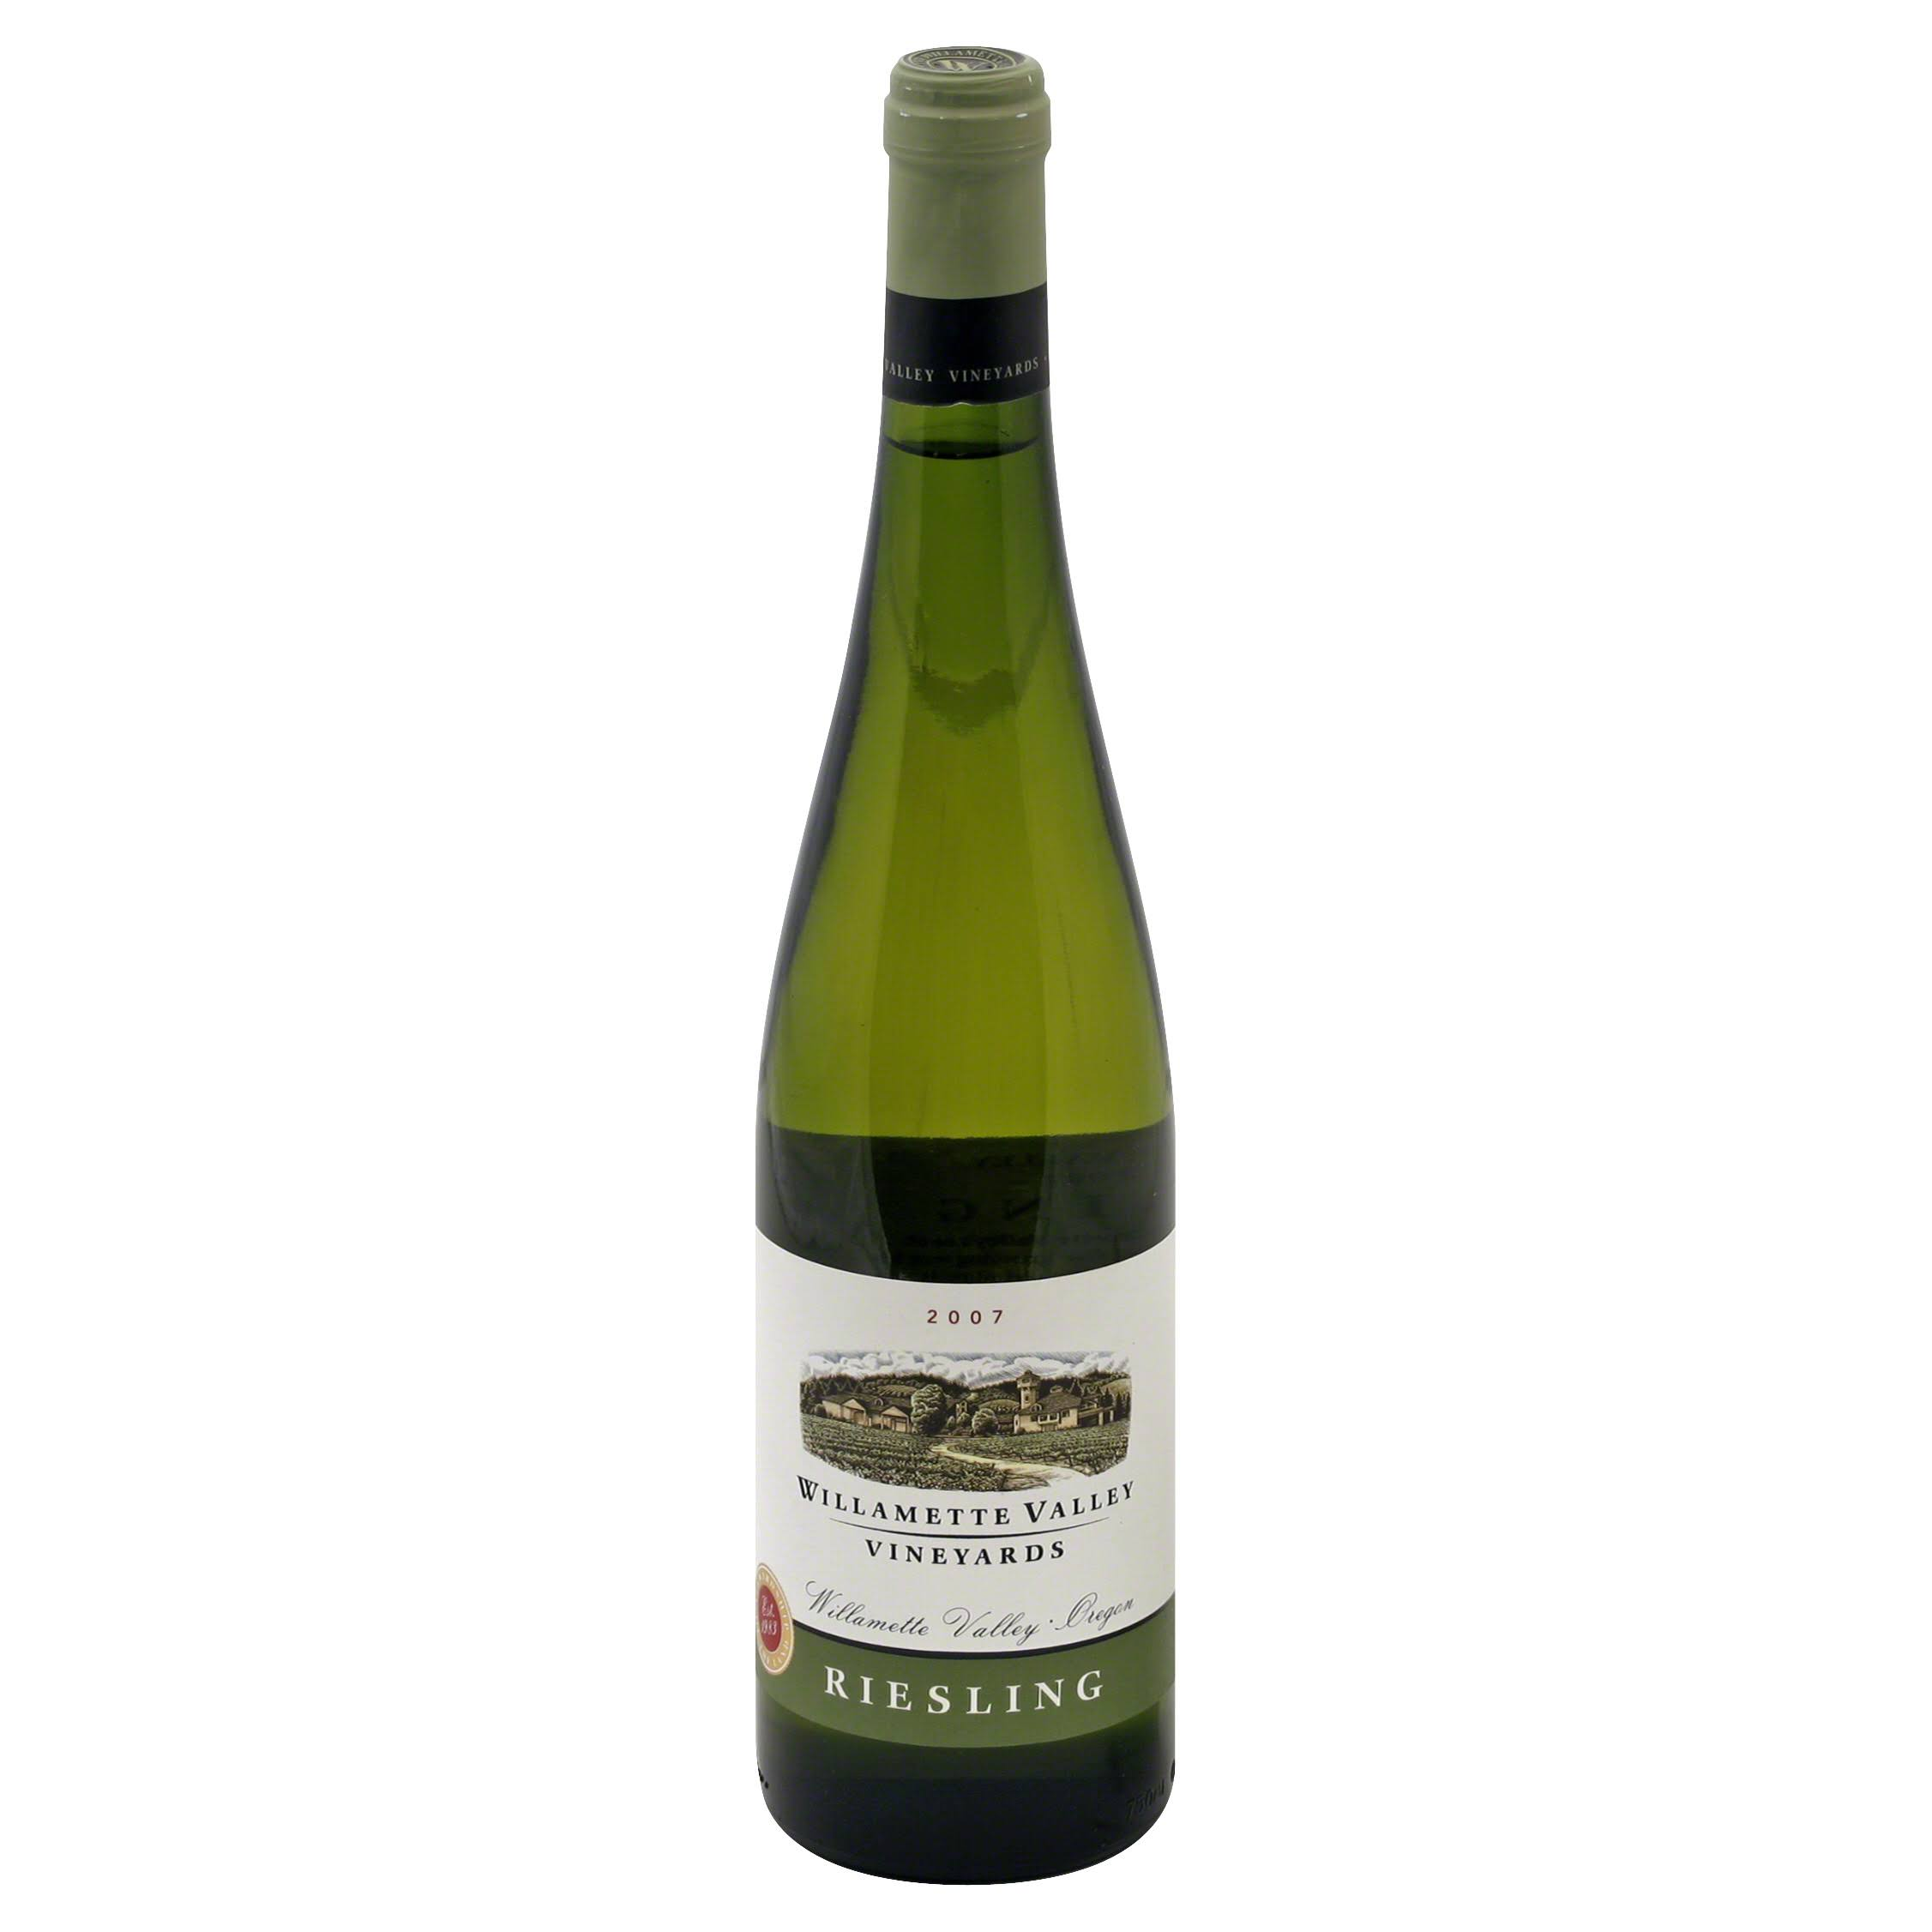 Willamette Valley Vineyards Riesling, Oregon, 2007 - 750 ml